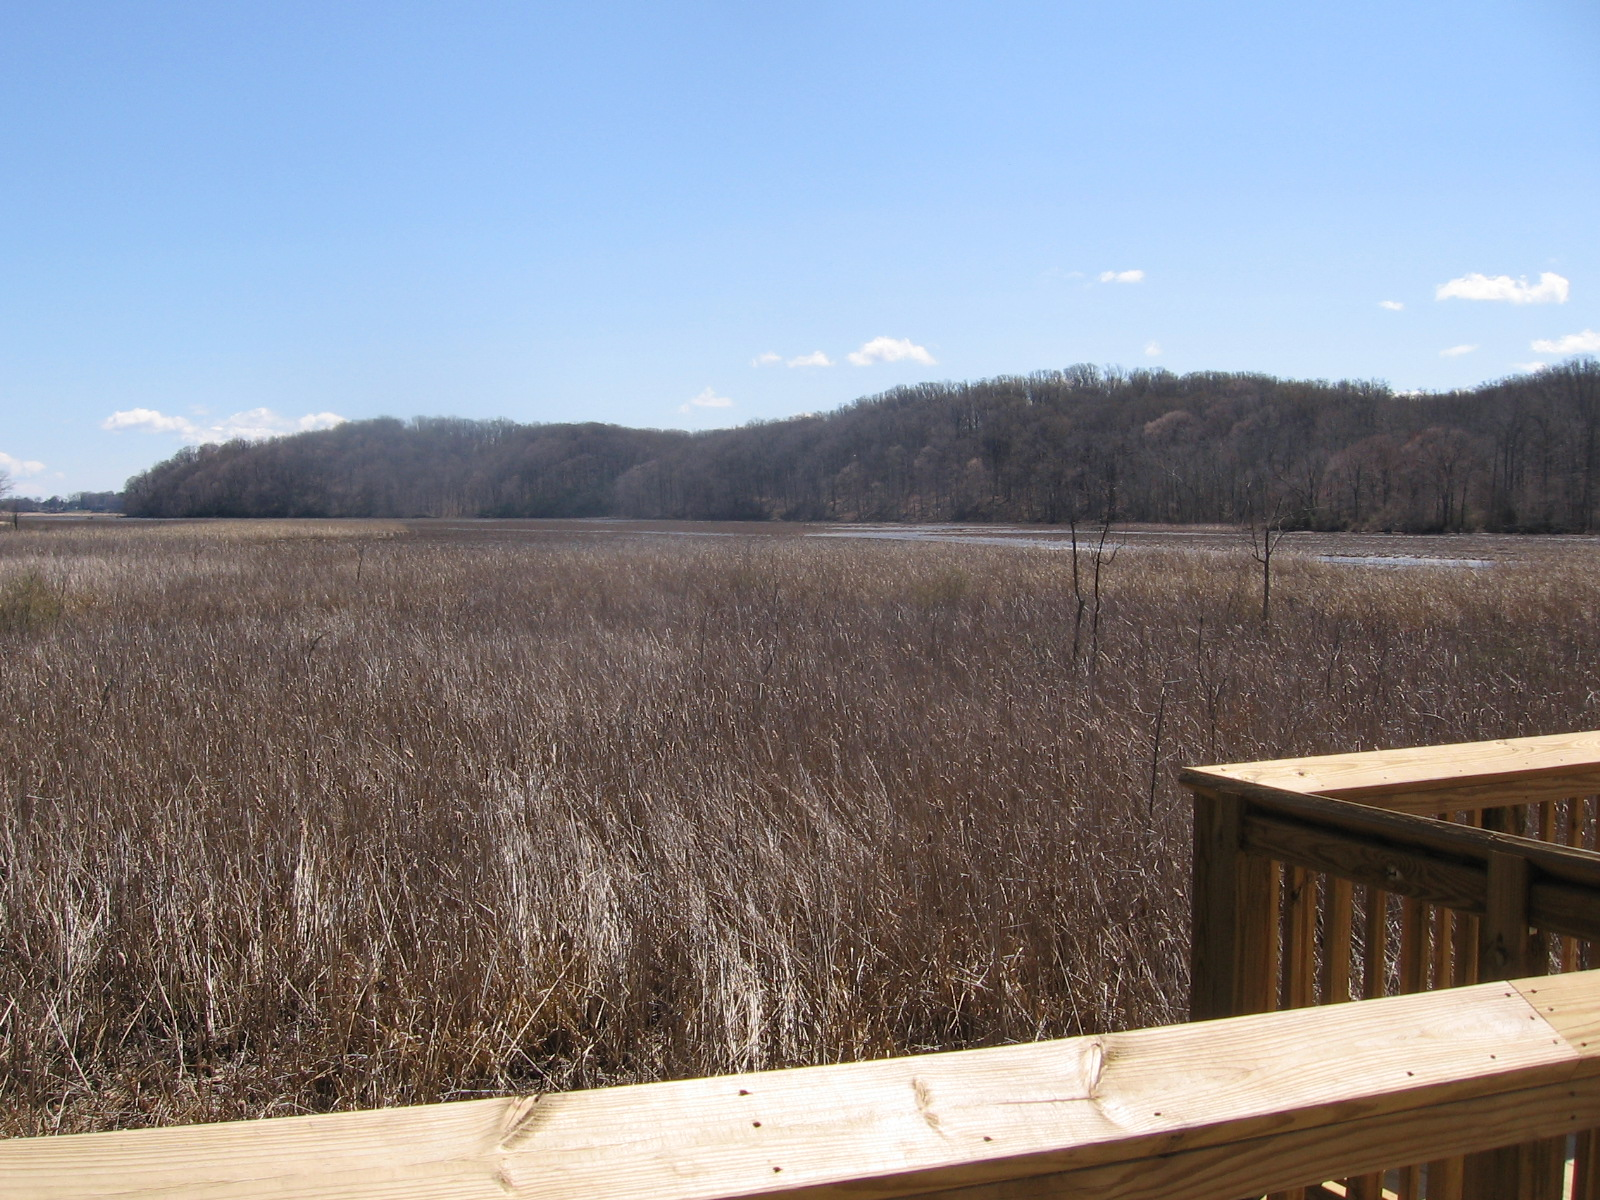 From the pier, visitors have a striking view of Accokeek Creek, looking east.